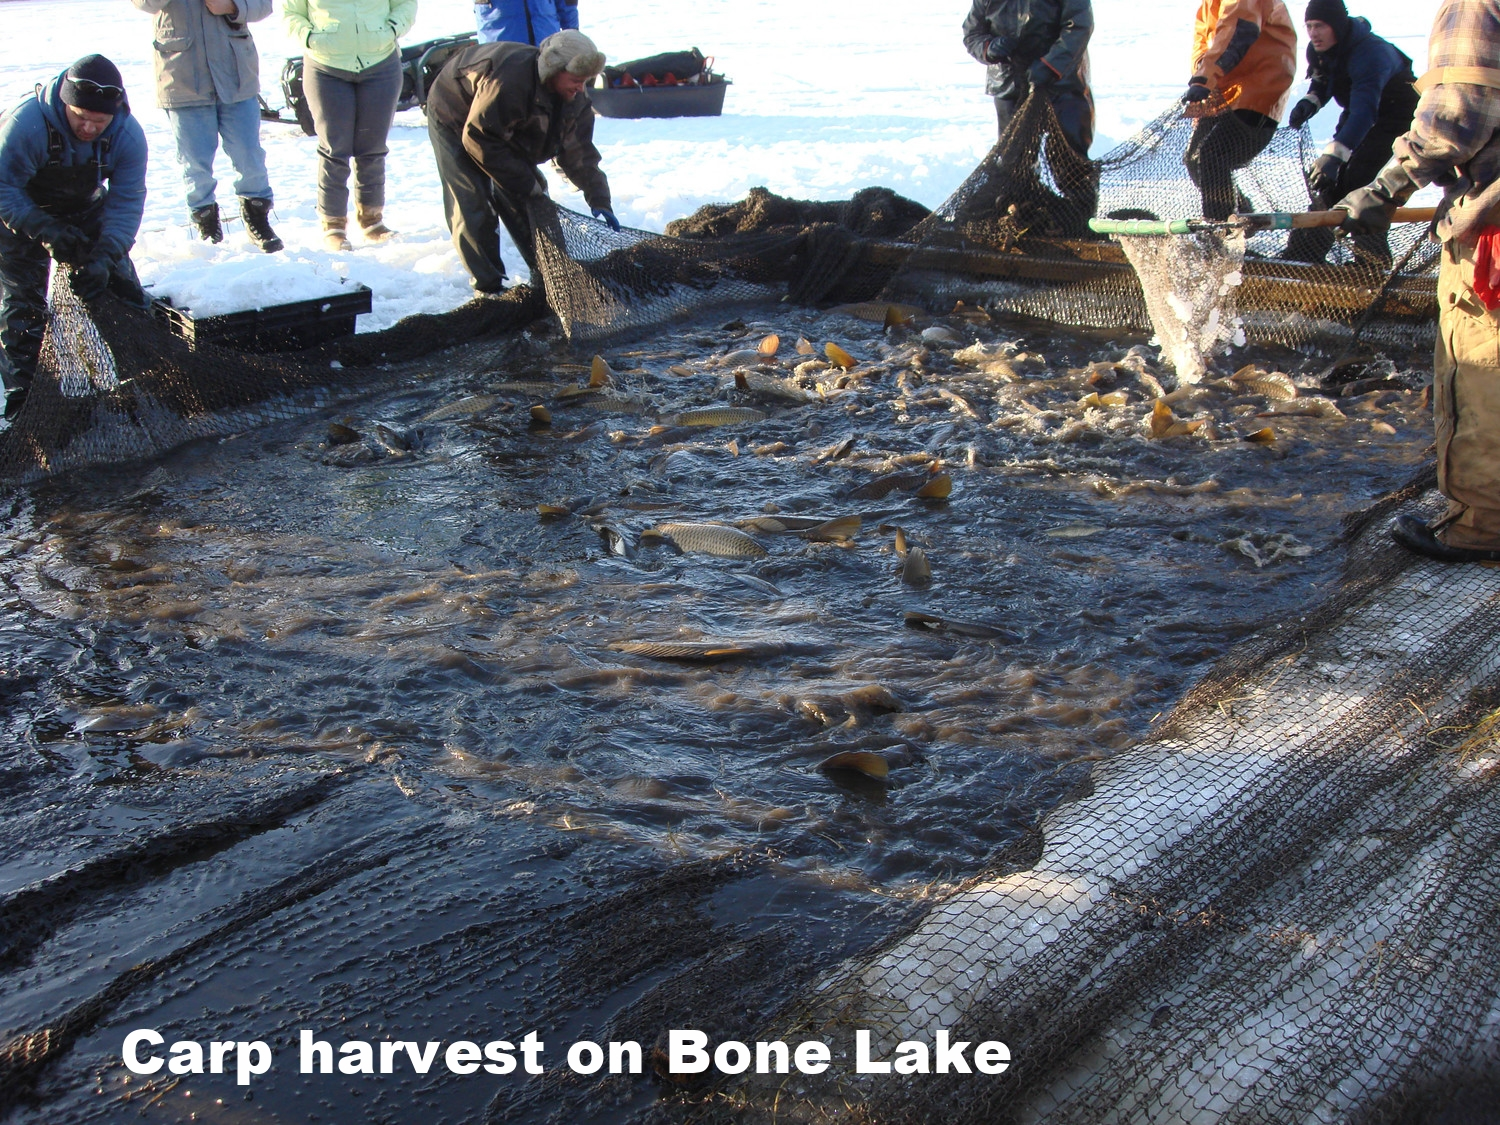 CLFLWD carp harvest in Bone Lake 2010.jpg